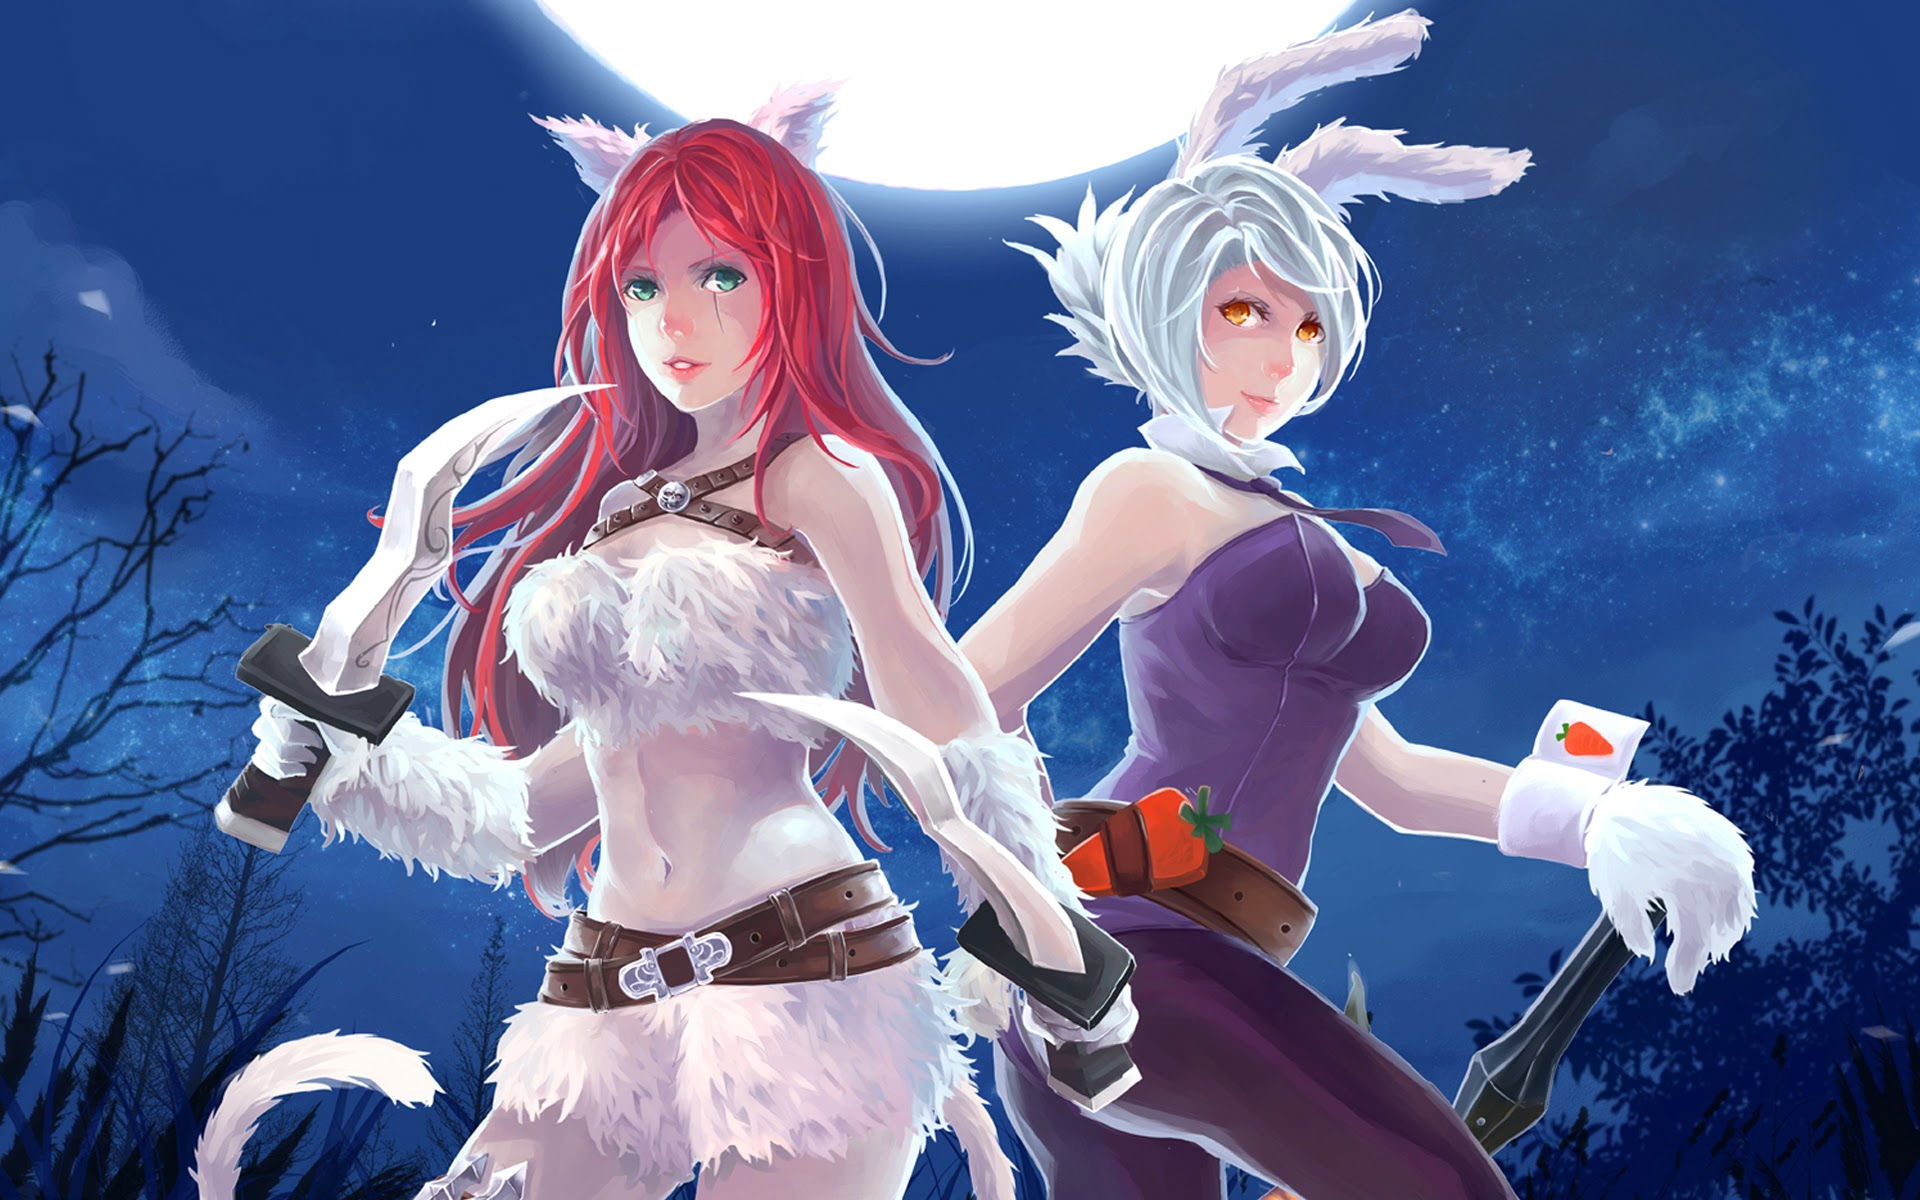 League Of Legends Battle Bunny Riven Wallpaper Download